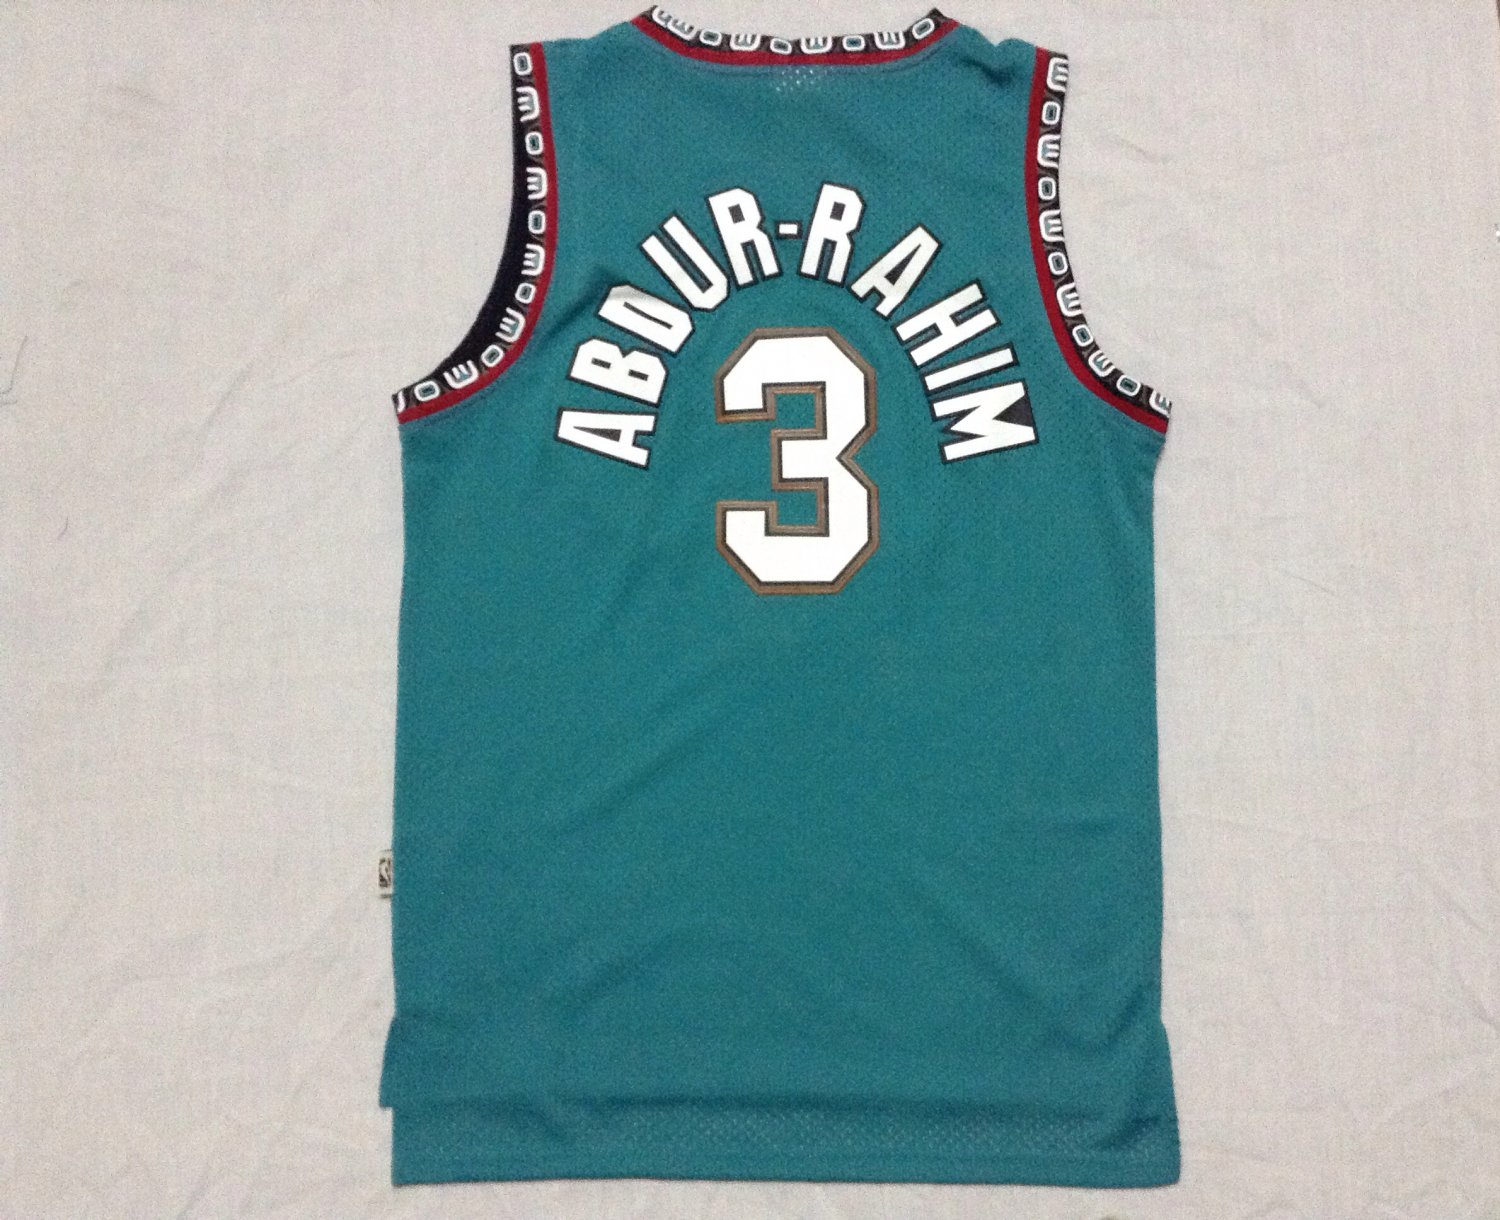 Men's Vancouver Grizzlies 3 Shareef Abdur-Rahim Green Basketball Throwback Jersey